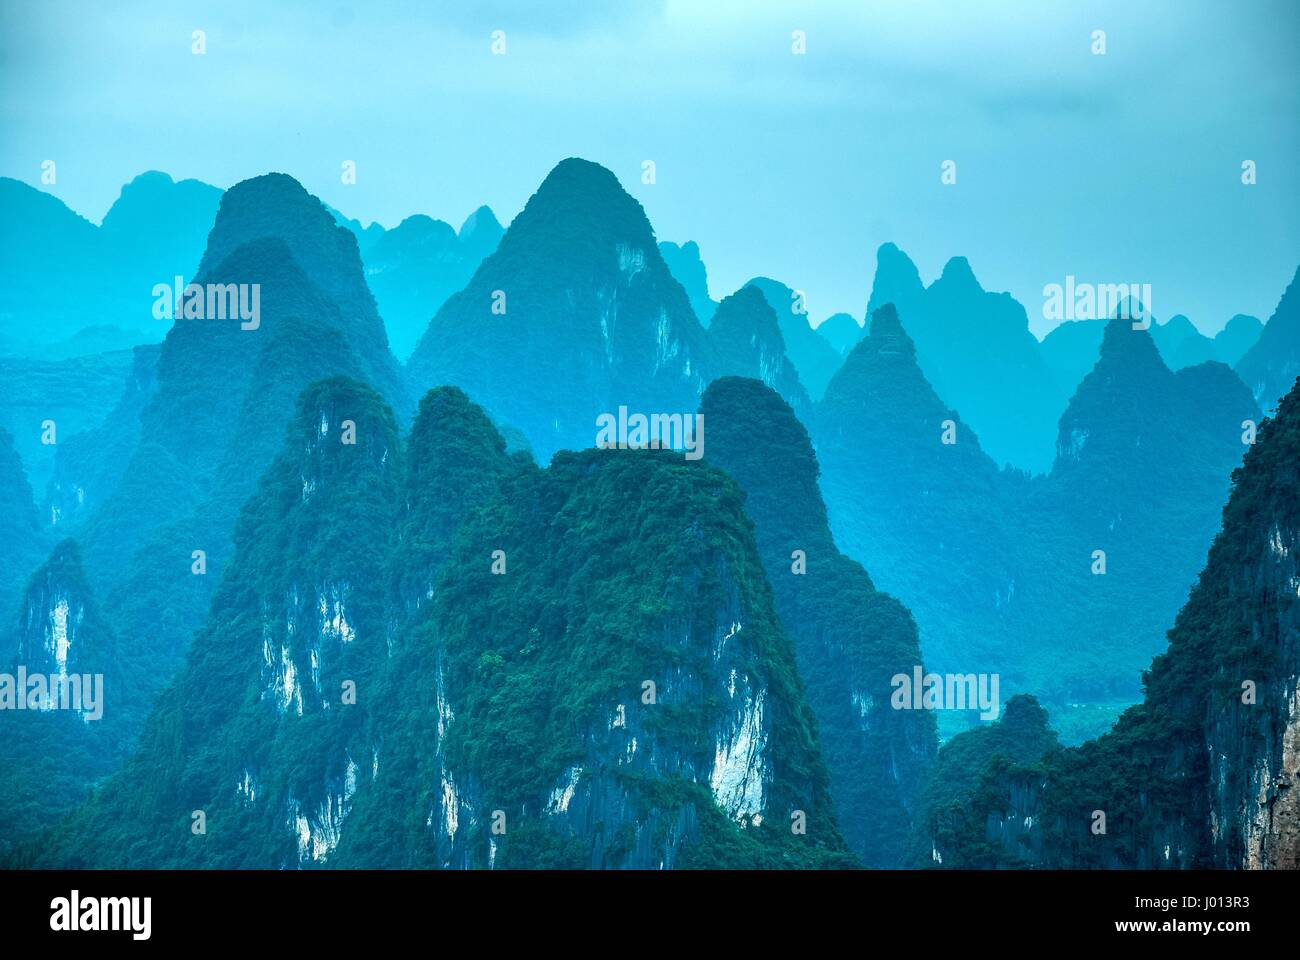 Karst mountains rural scenery in the mist, Guilin, China. - Stock Image